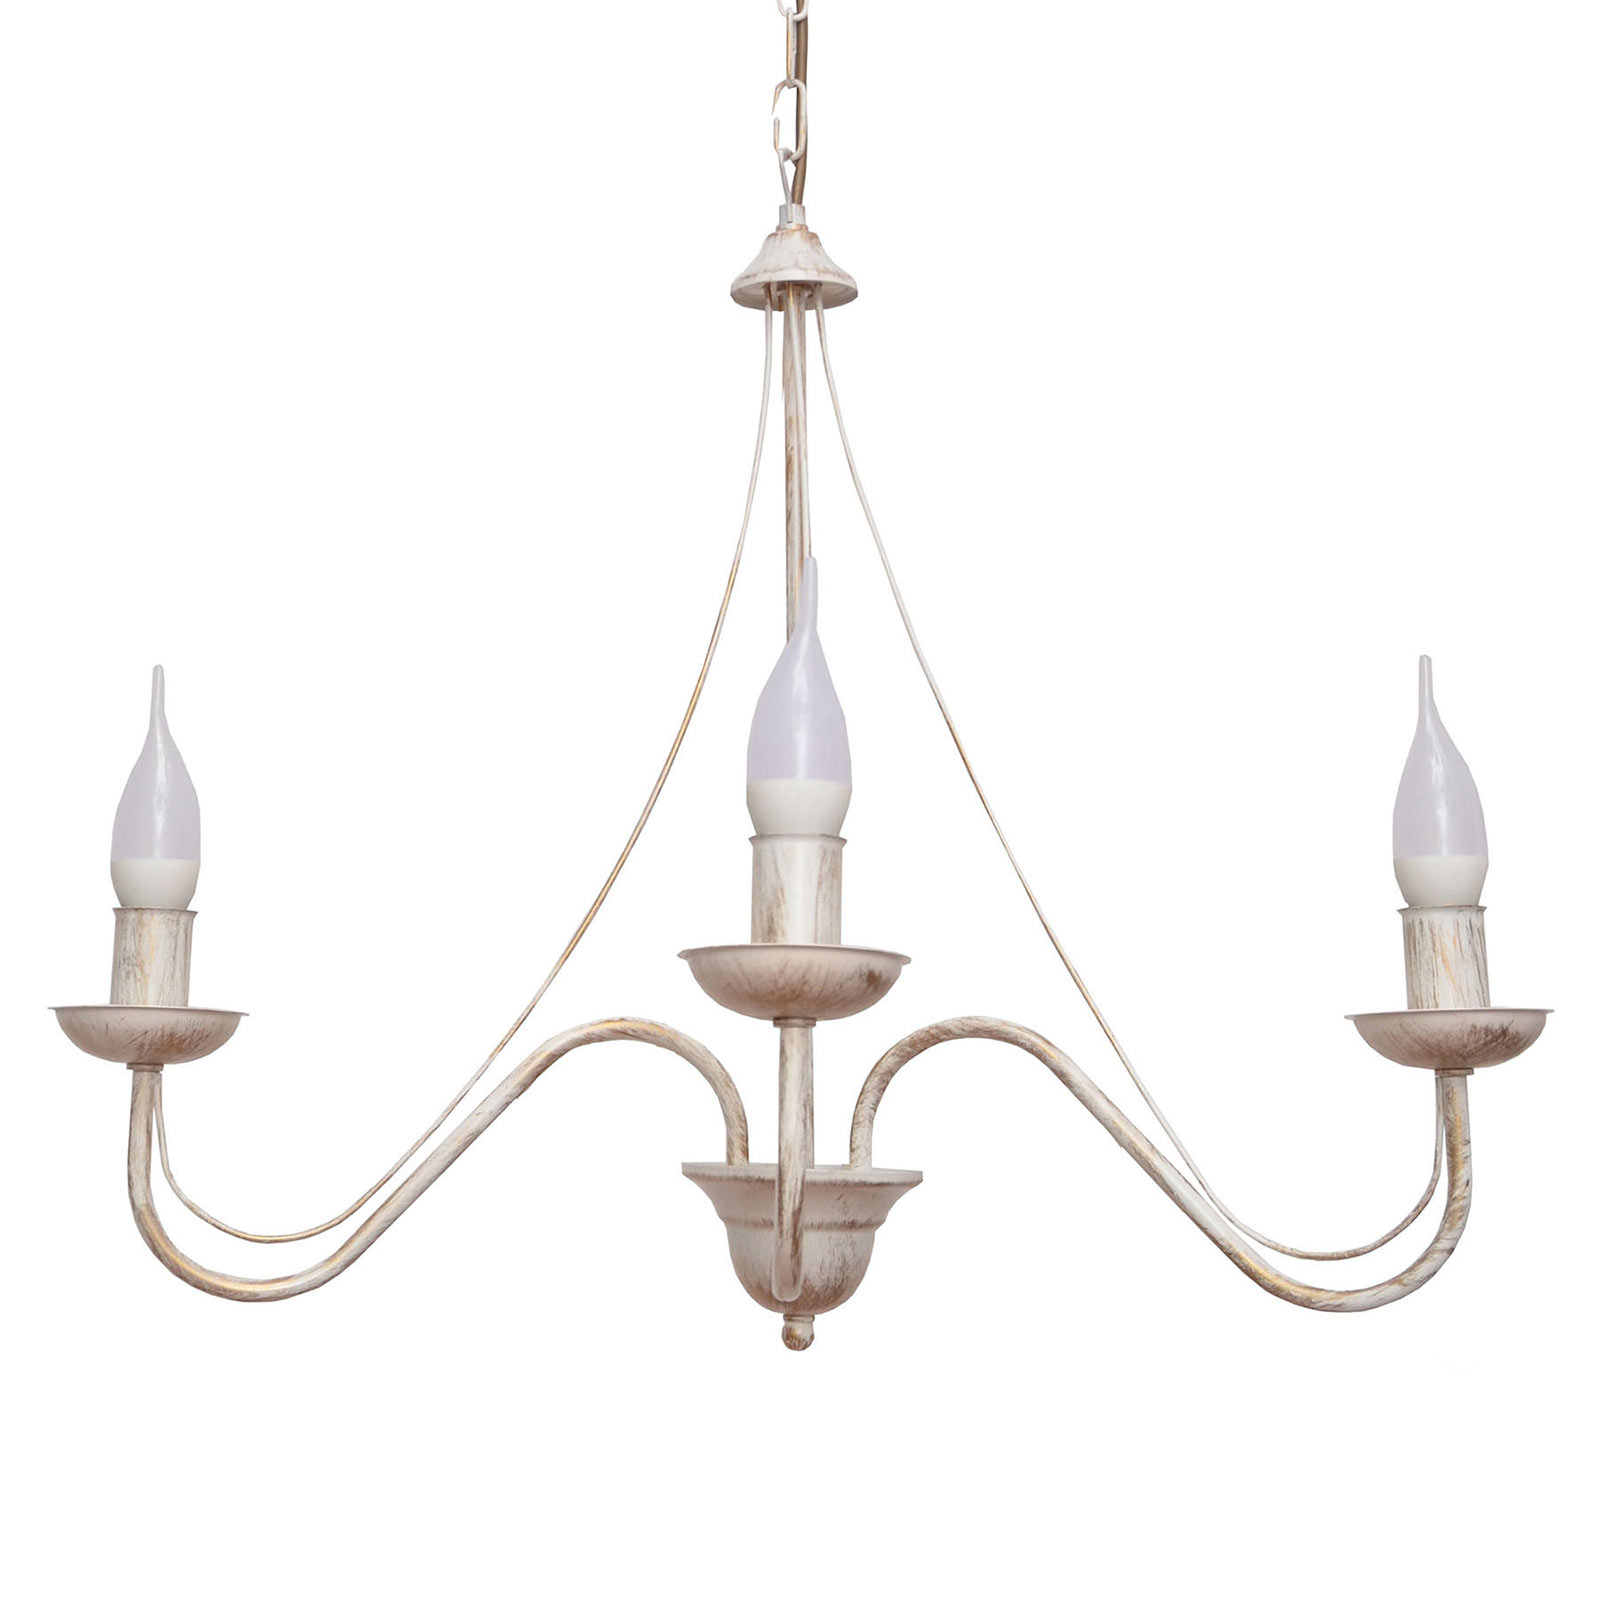 Kroonluchter Malbo 3-lamps in wit